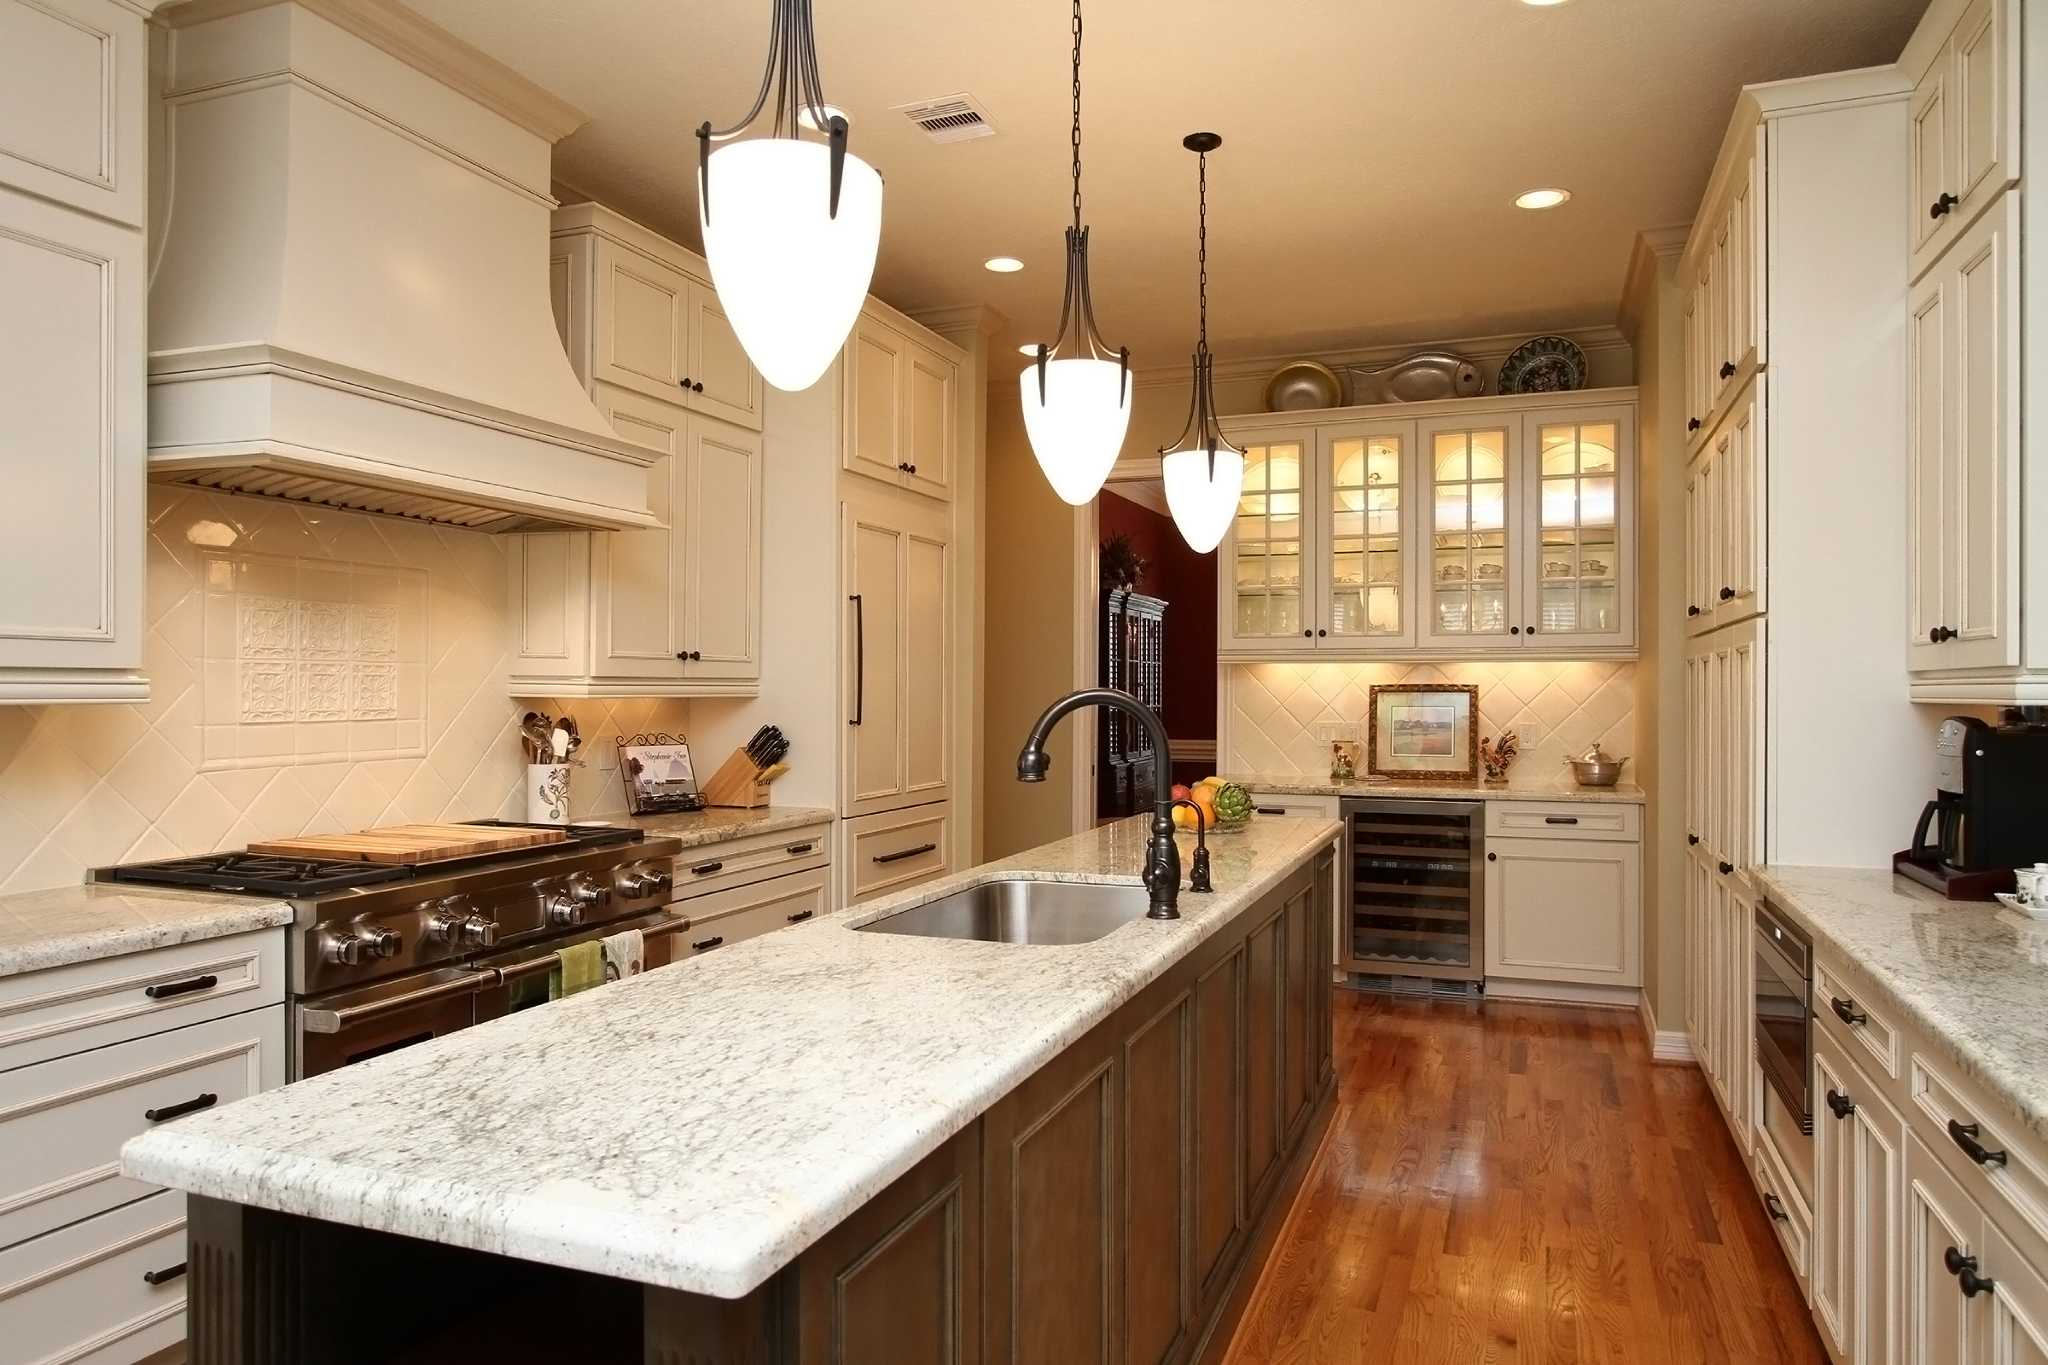 Ghba remodelers council design build remodel keeps project 39 under one roof 39 newstimes Kitchen design brookfield ct